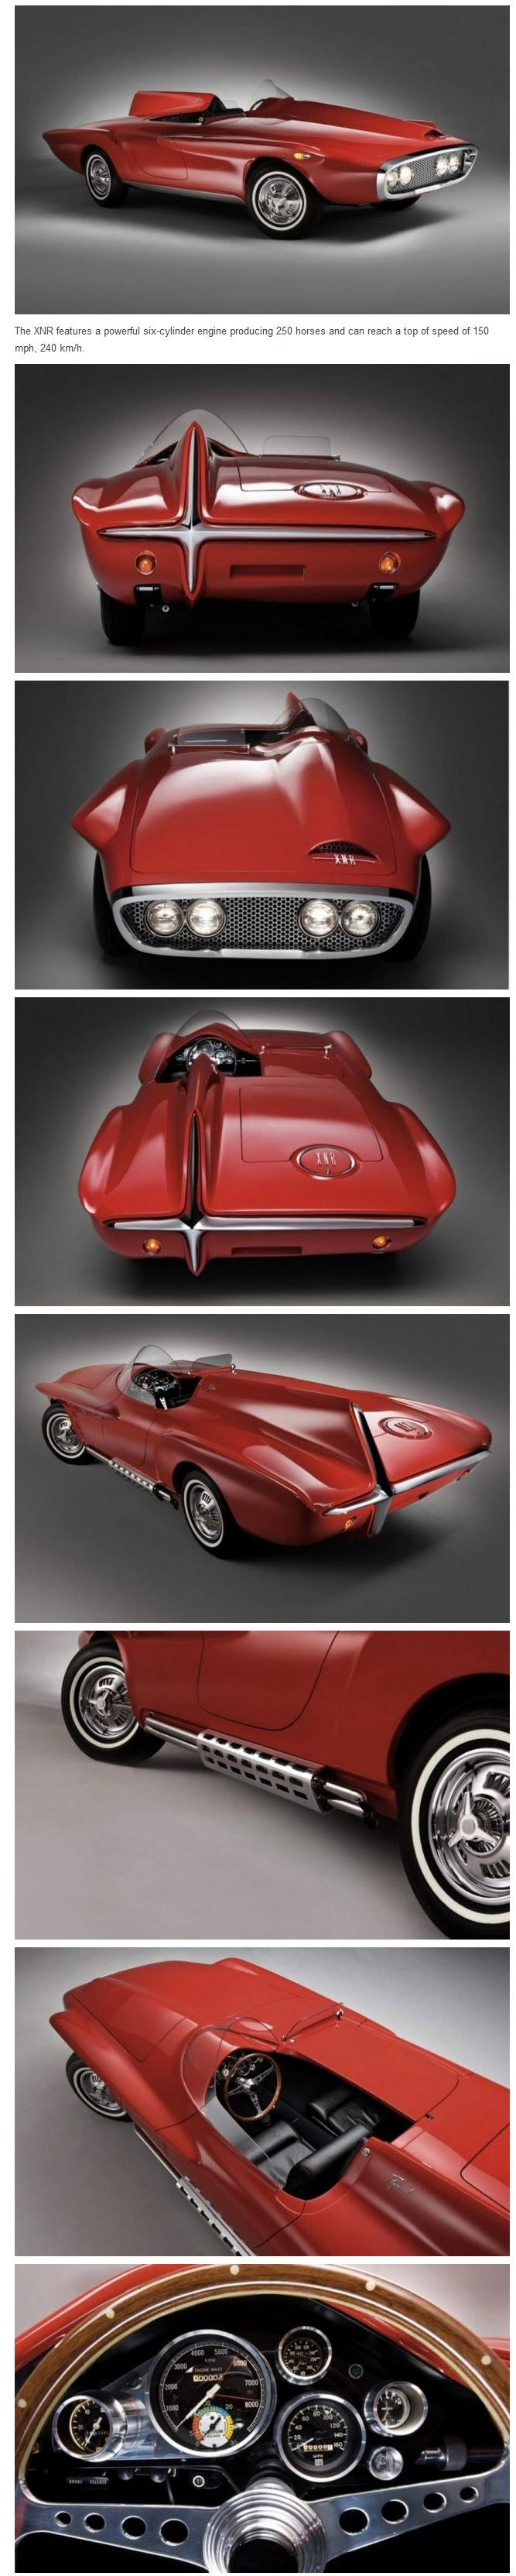 Plymouth xnr concept car most cars nowadays are ugly generic cheap cartoonish